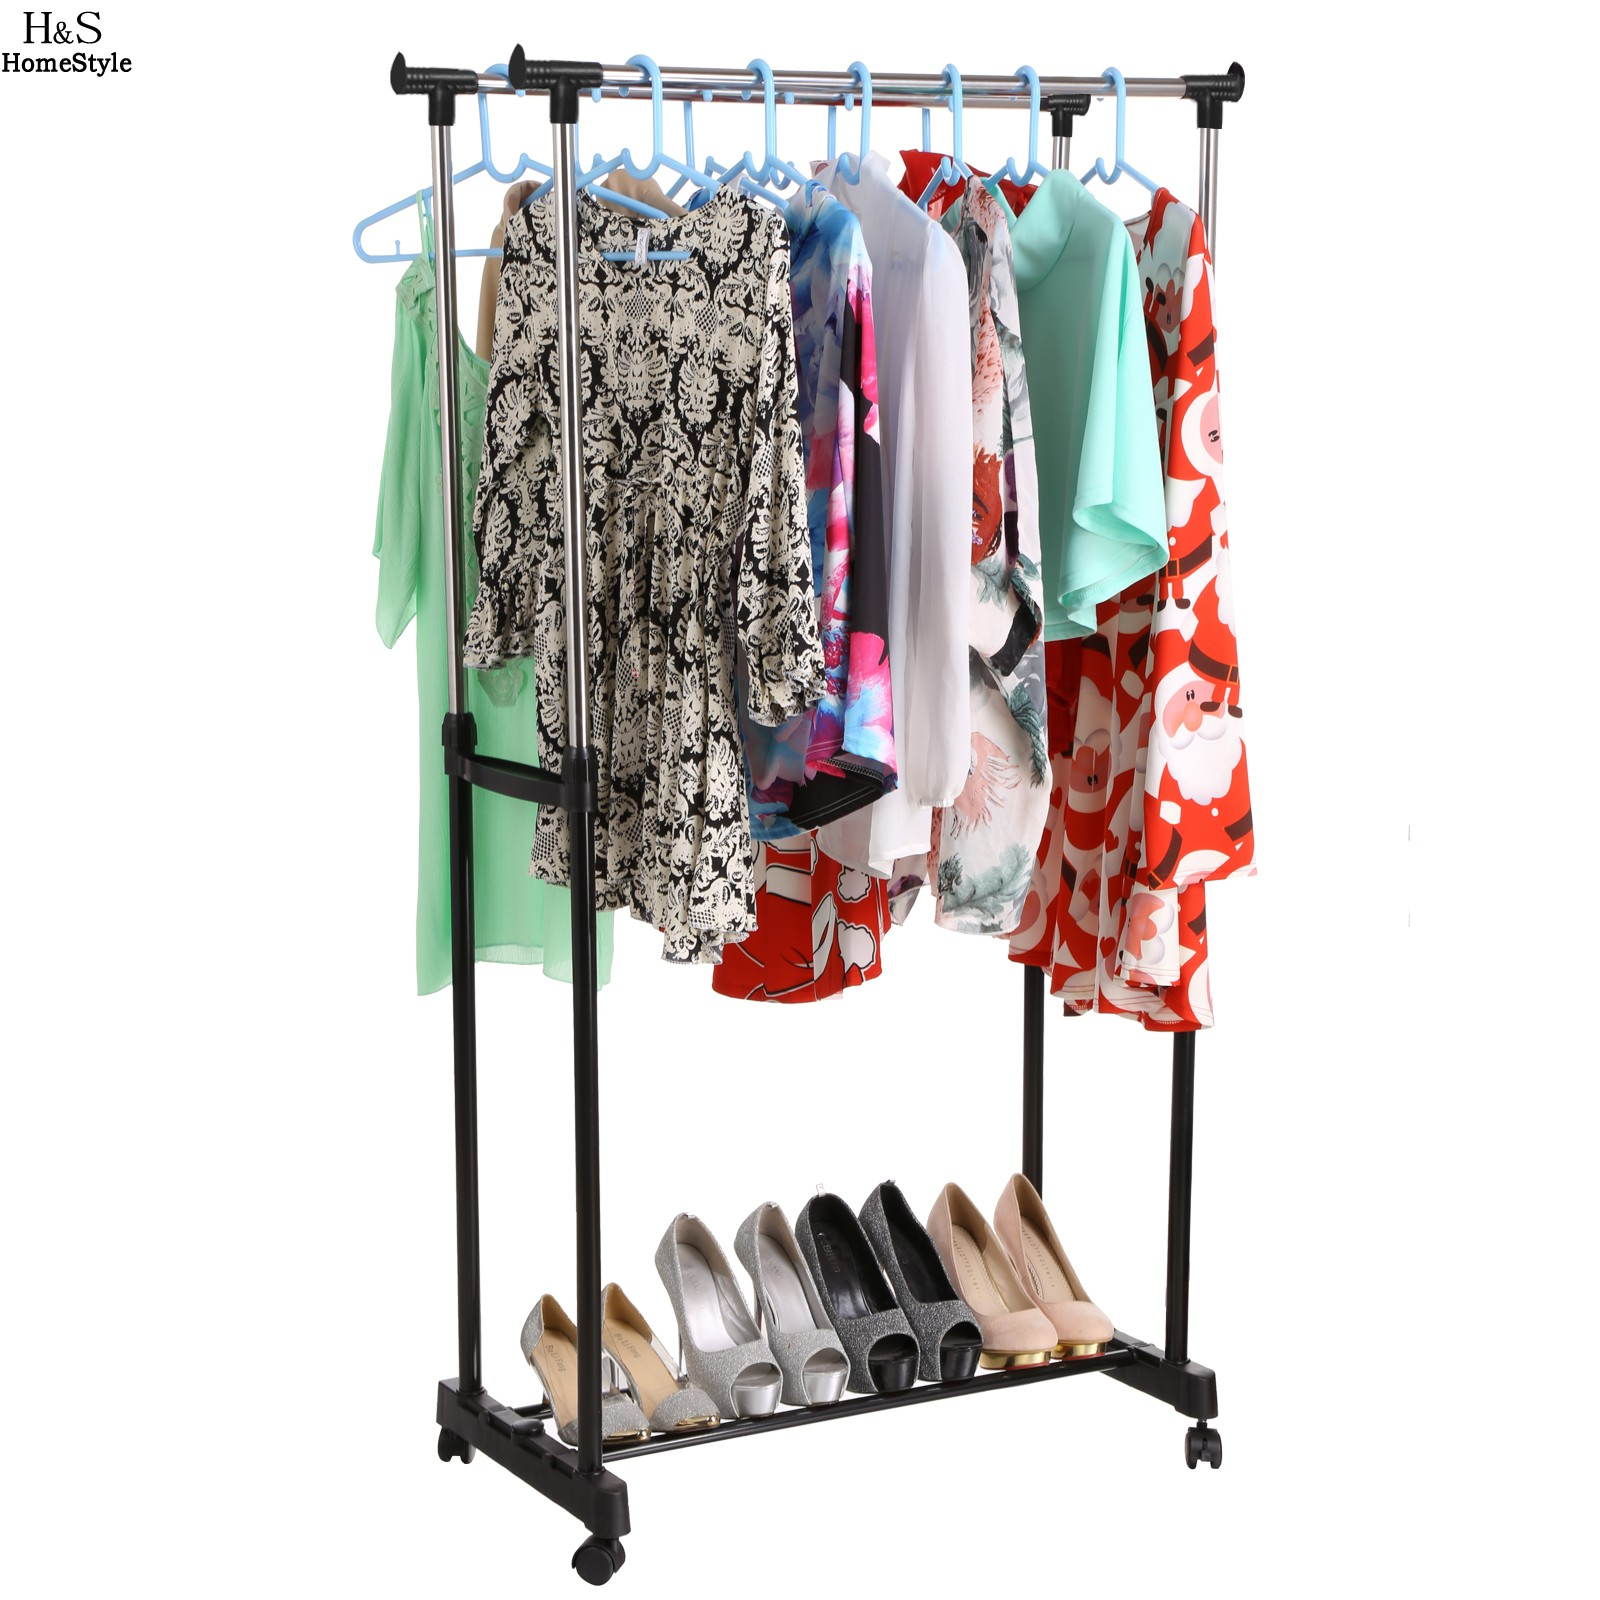 Portable Adjustable Clothing Racks Double Clothes Garment